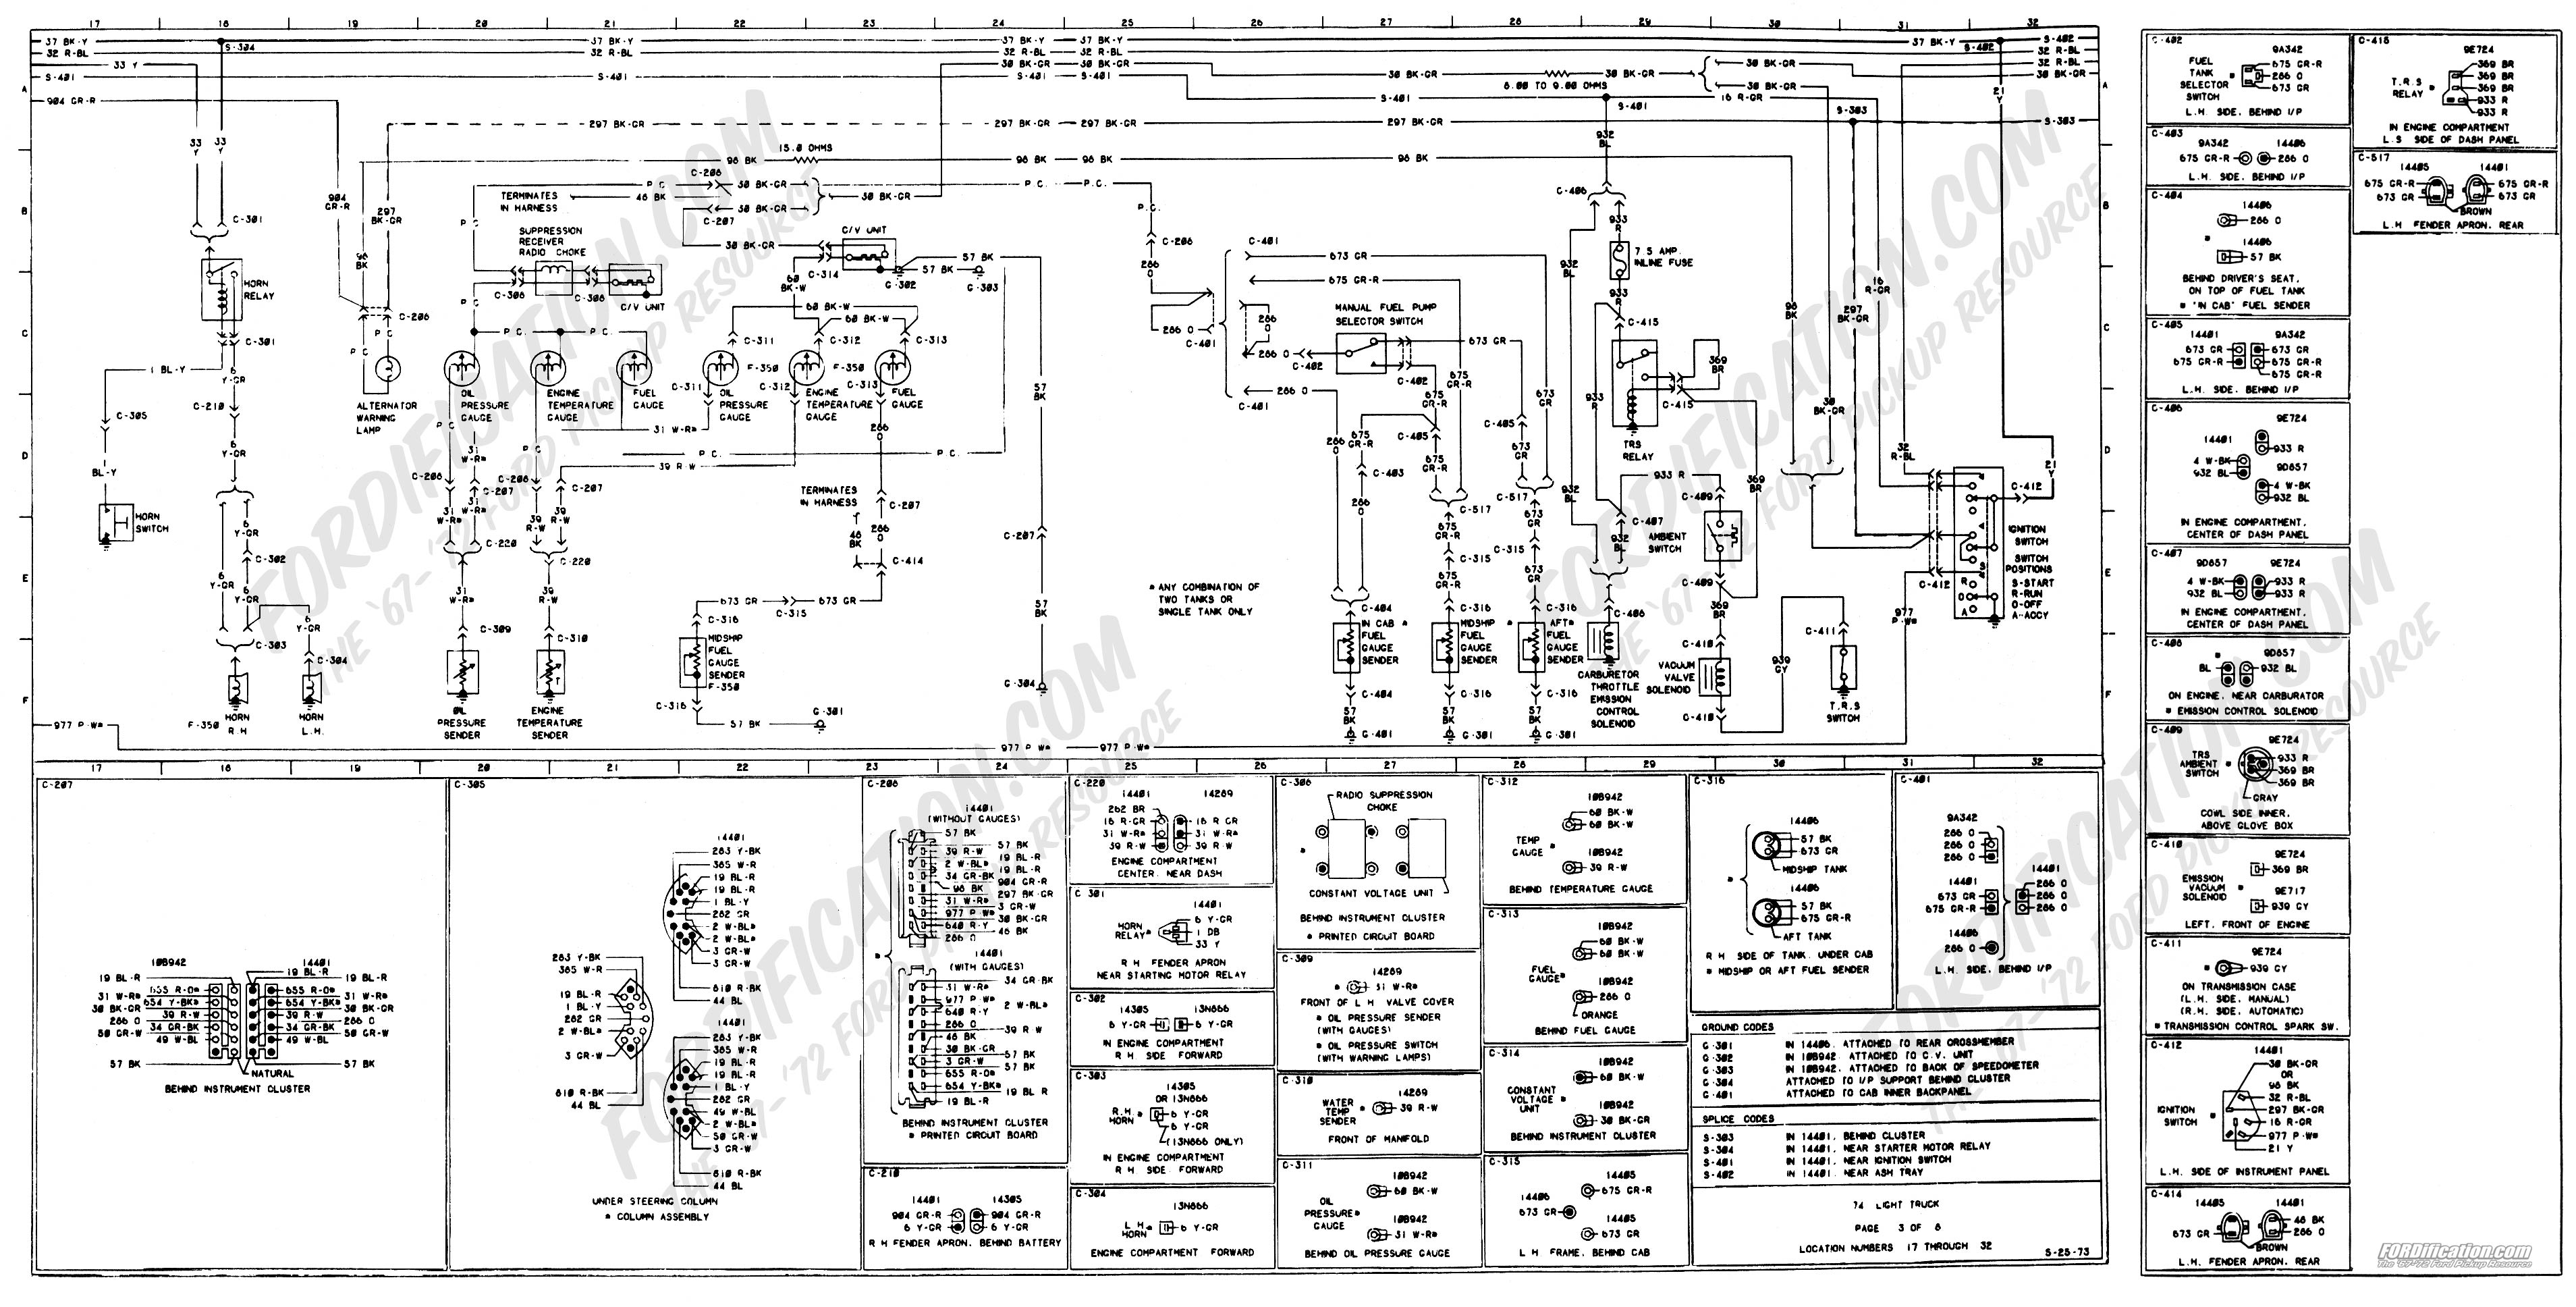 1971 ford f 250 ignition wiring schematic - wiring diagram mind-teta-a -  mind-teta-a.disnar.it  disnar.it